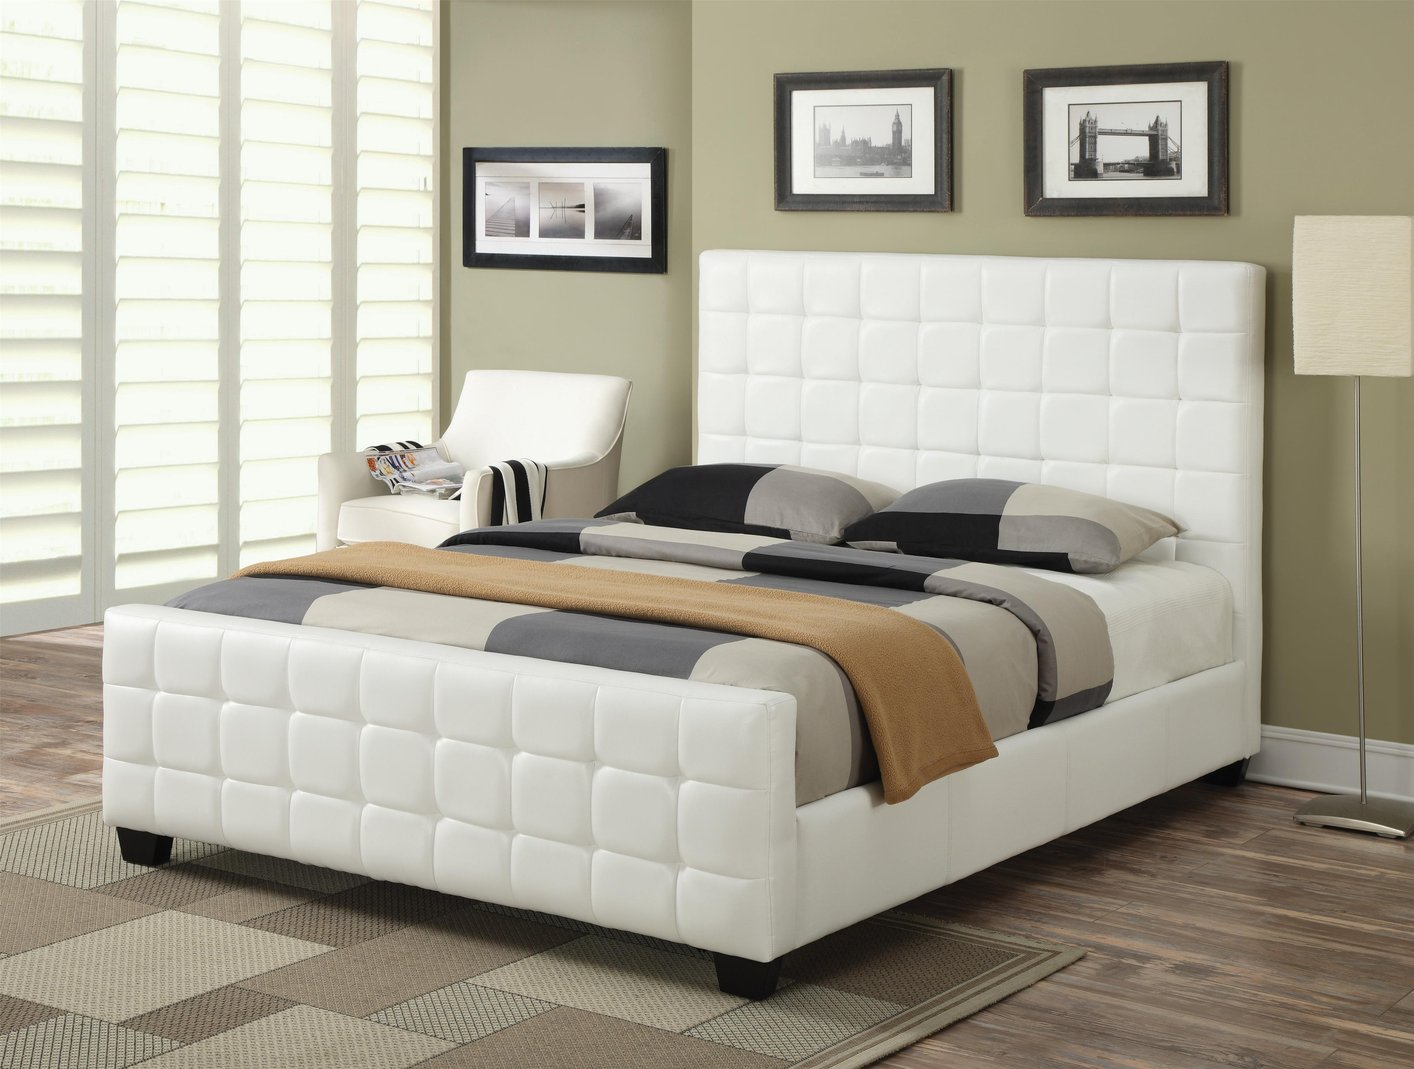 White Leather California King Size Bed - Steal-A-Sofa Furniture ...